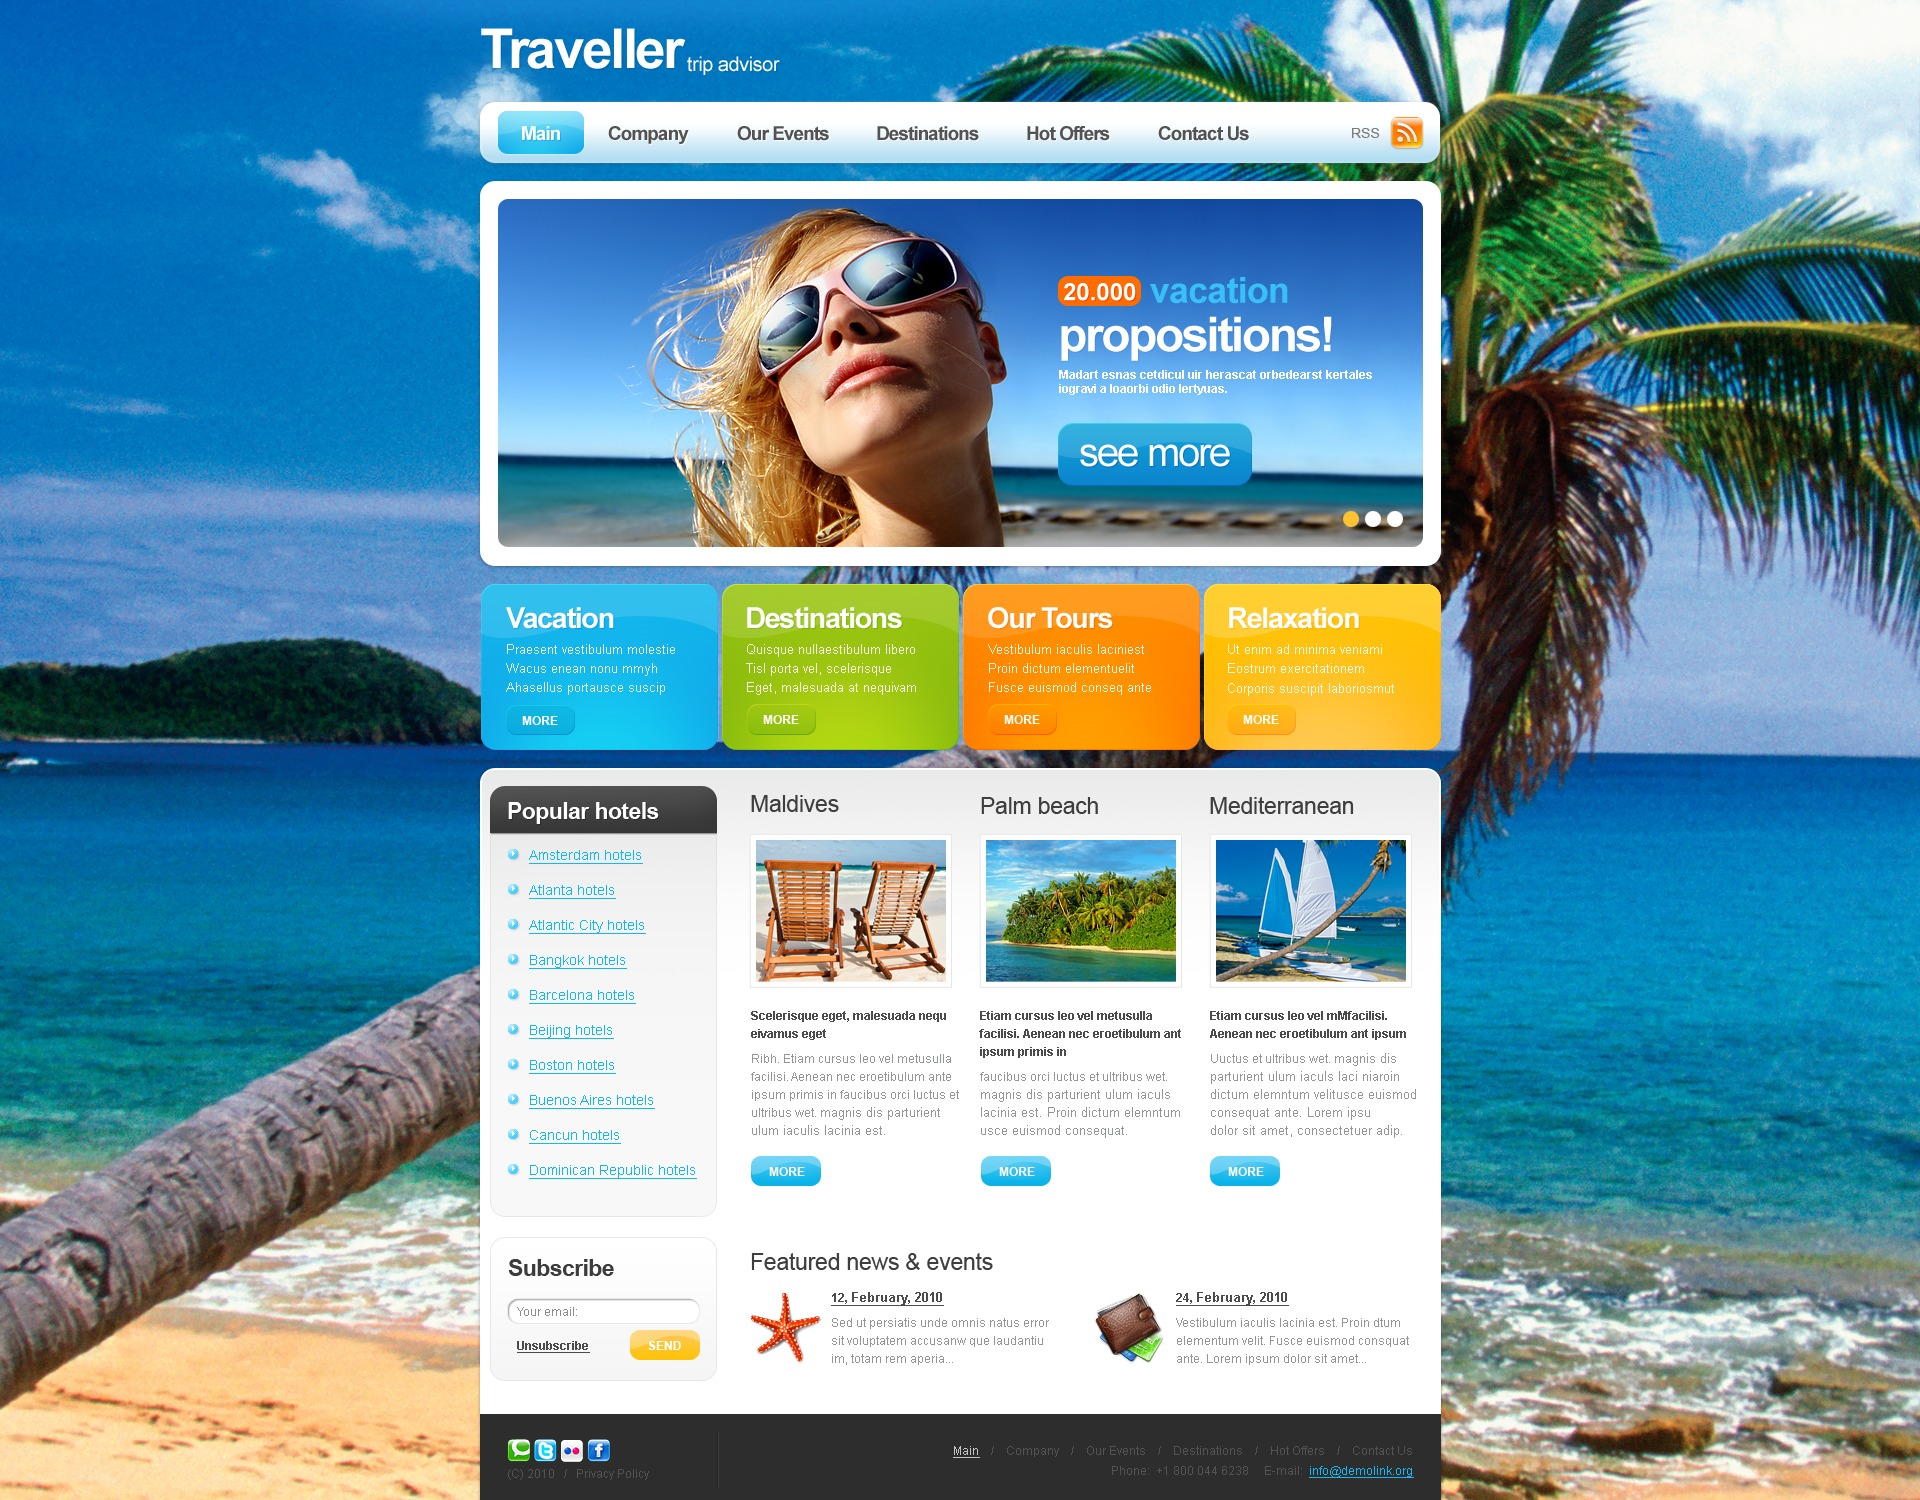 The Traveller Travel PSD Design 54159, one of the best PSD templates of its kind (travel, most popular, flash 8, wide), also known as traveller travel PSD template, expert agency PSD template, compass PSD template, tour country PSD template, resort PSD template, spa PSD template, flight hotel PSD template, car PSD template, rental PSD template, cruise PSD template, sights PSD template, reservation PSD template, location PSD template, authorization PSD template, ticket PSD template, guide PSD template, beach PSD template, sea PSD template, relaxation PSD template, recreation PSD template, impression PSD template, air PSD template, liner PSD template, traveling PSD template, apartment PSD template, vacation PSD template, rest PSD template, comfort PSD template, destinatio and related with traveller travel, expert agency, compass, tour country, resort, spa, flight hotel, car, rental, cruise, sights, reservation, location, authorization, ticket, guide, beach, sea, relaxation, recreation, impression, air, liner, traveling, apartment, vacation, rest, comfort, destinatio, etc.